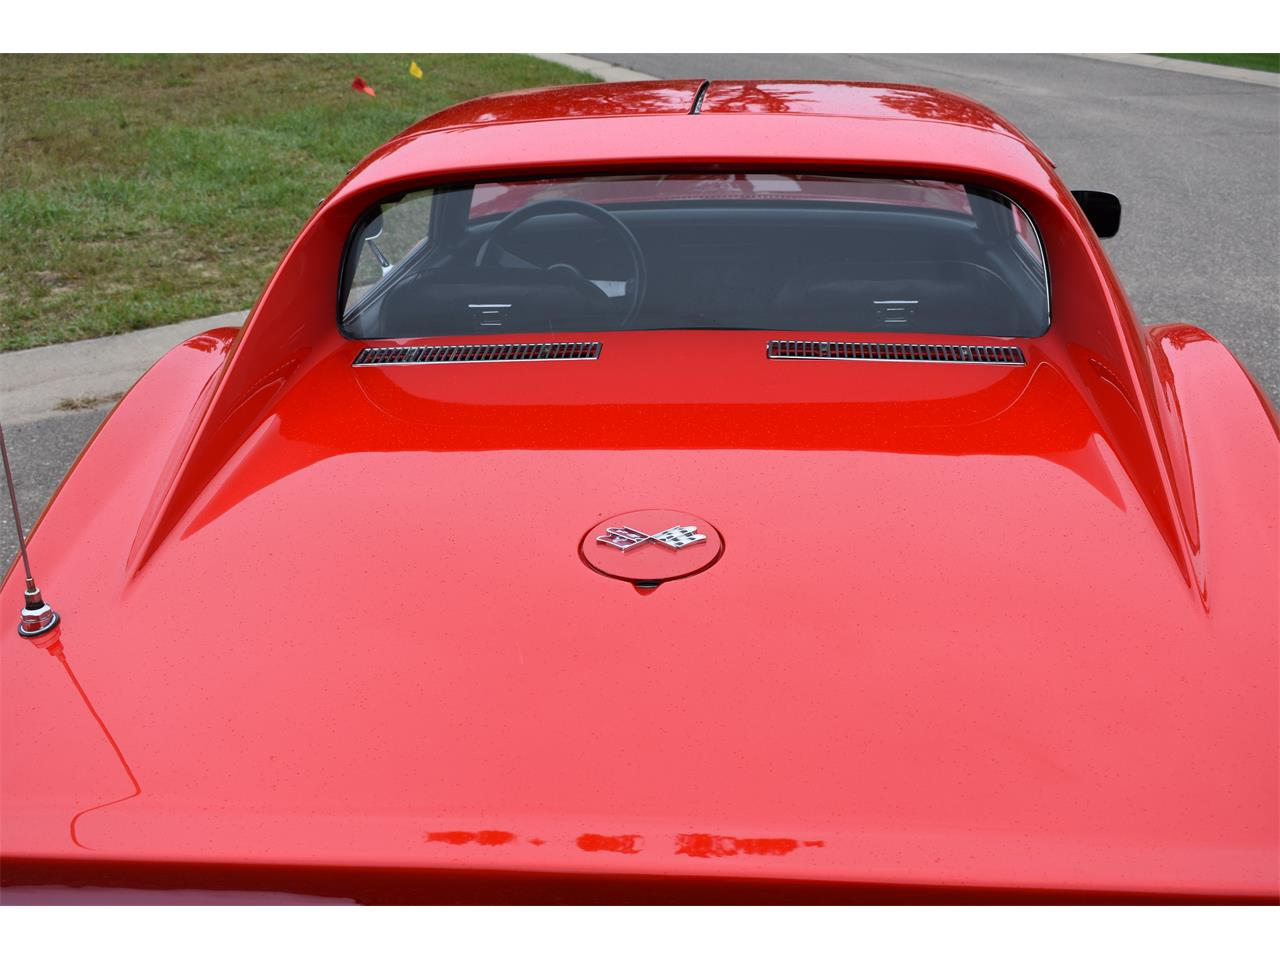 Large Picture of Classic '72 Chevrolet Corvette located in Little Falls Minnesota - $27,000.00 Offered by a Private Seller - OMCE